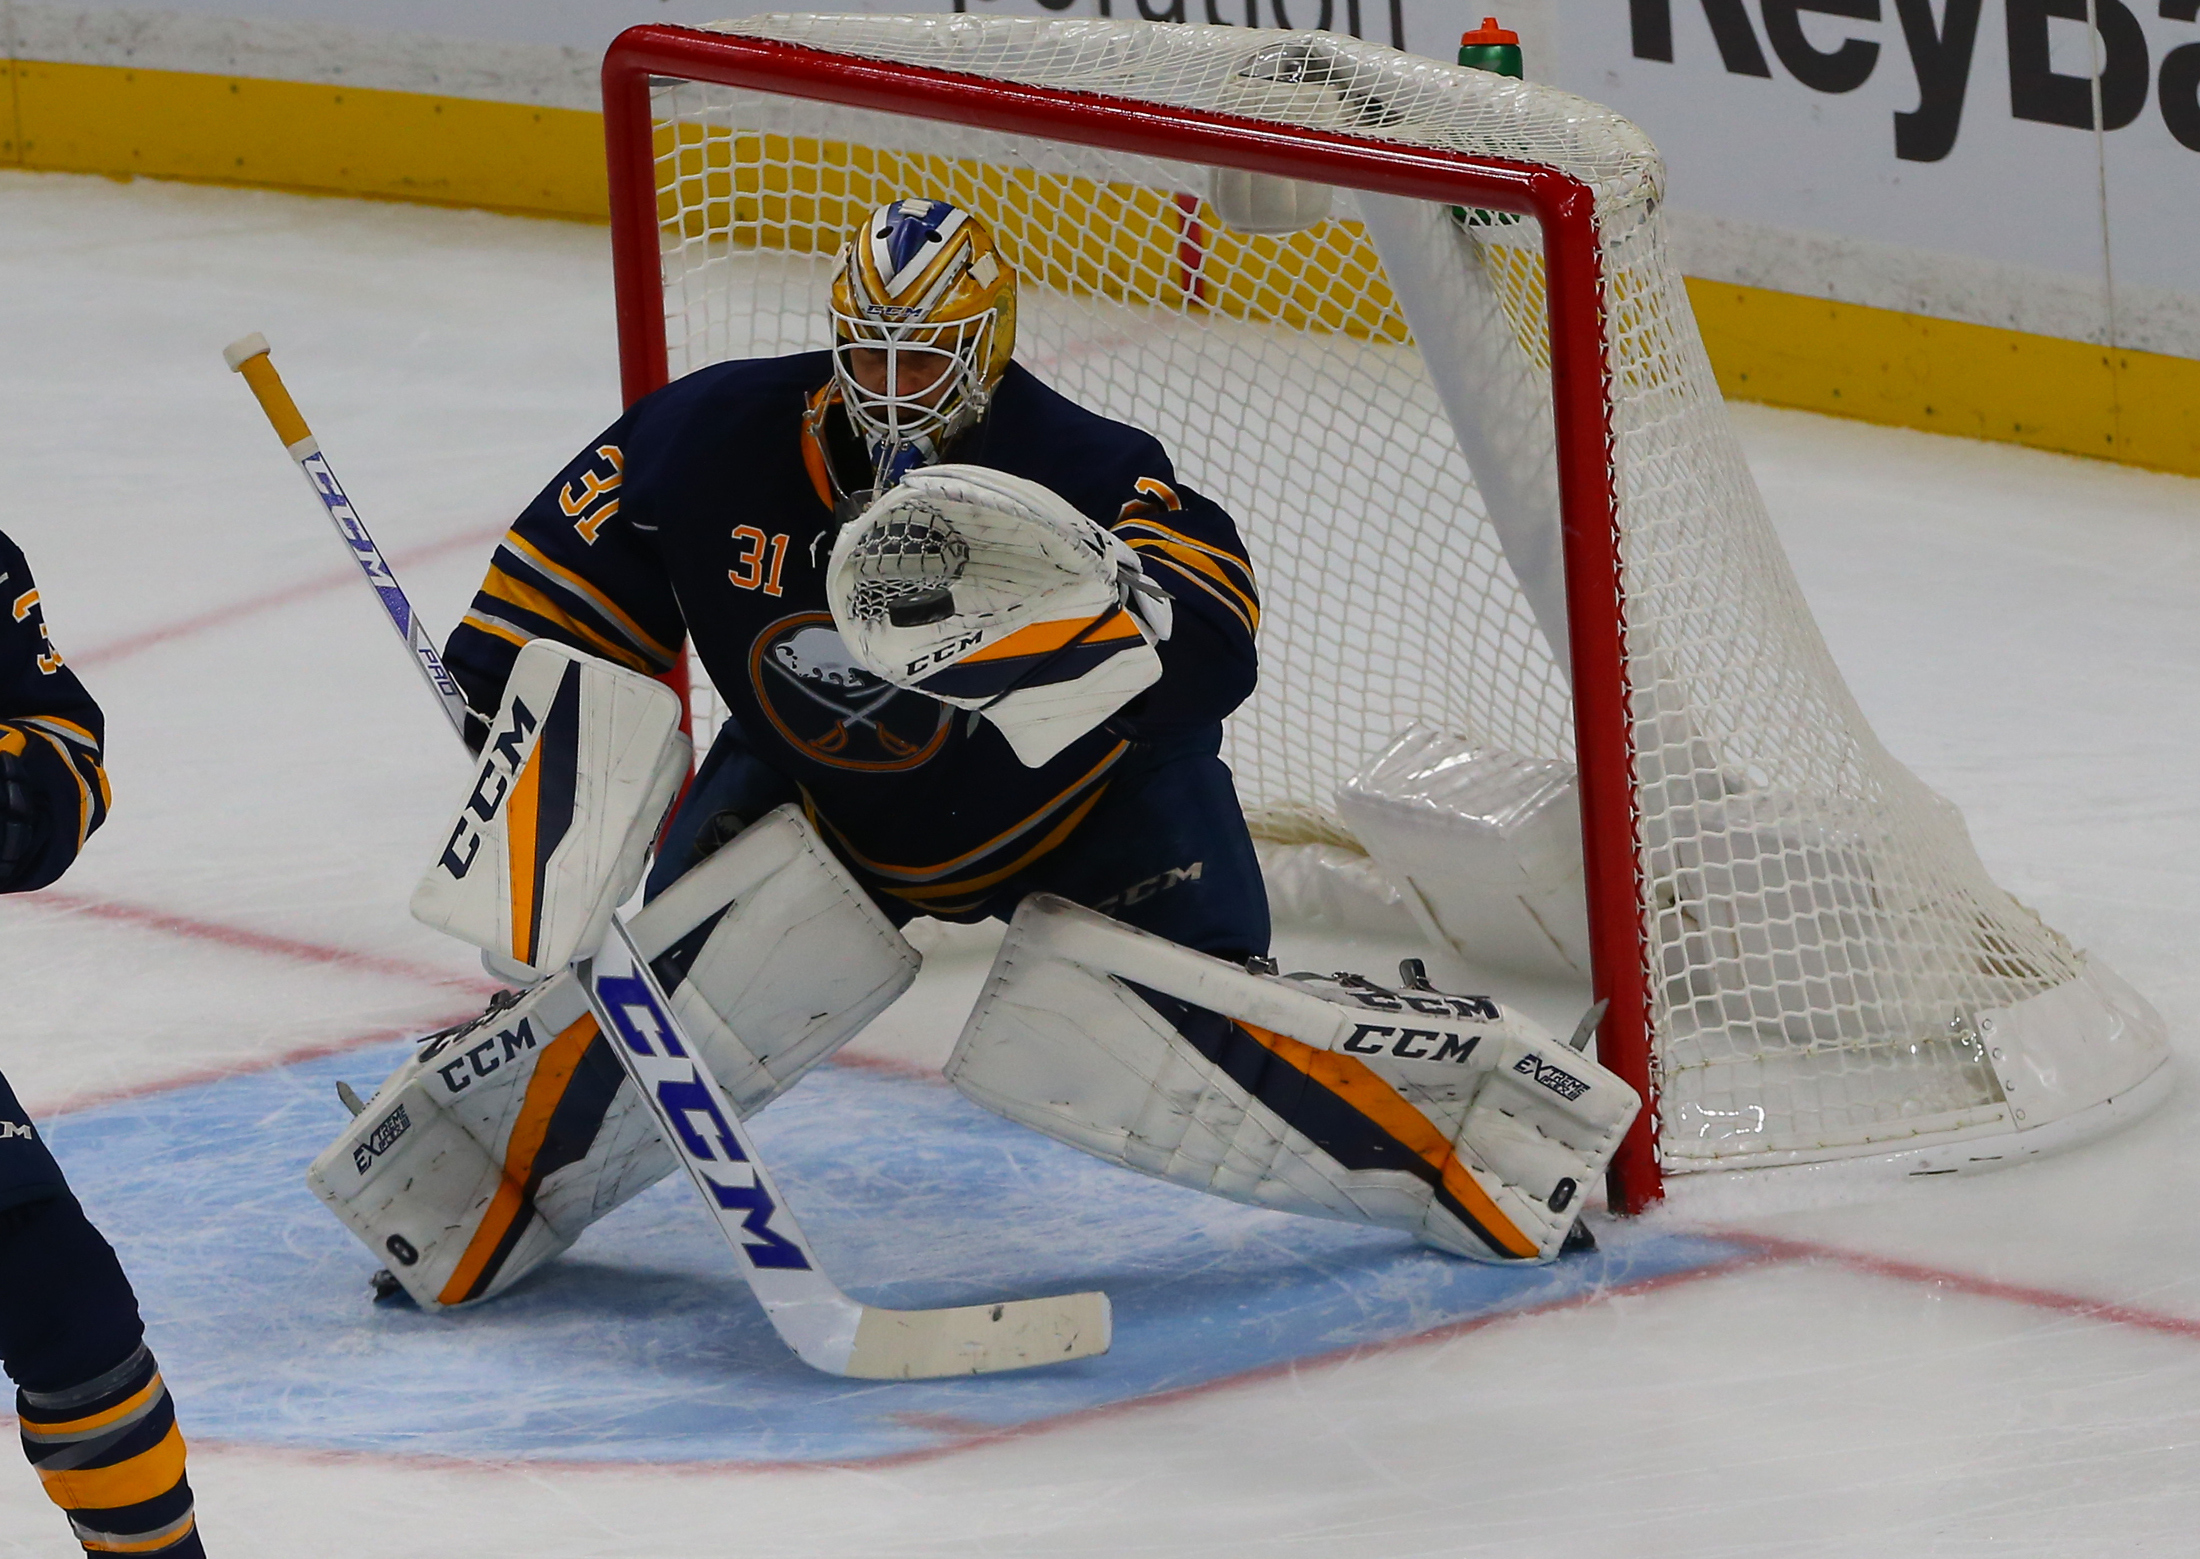 Anders Nilsson added to an impressive date in Sabres goaltending history. (John Hickey/Buffalo News)